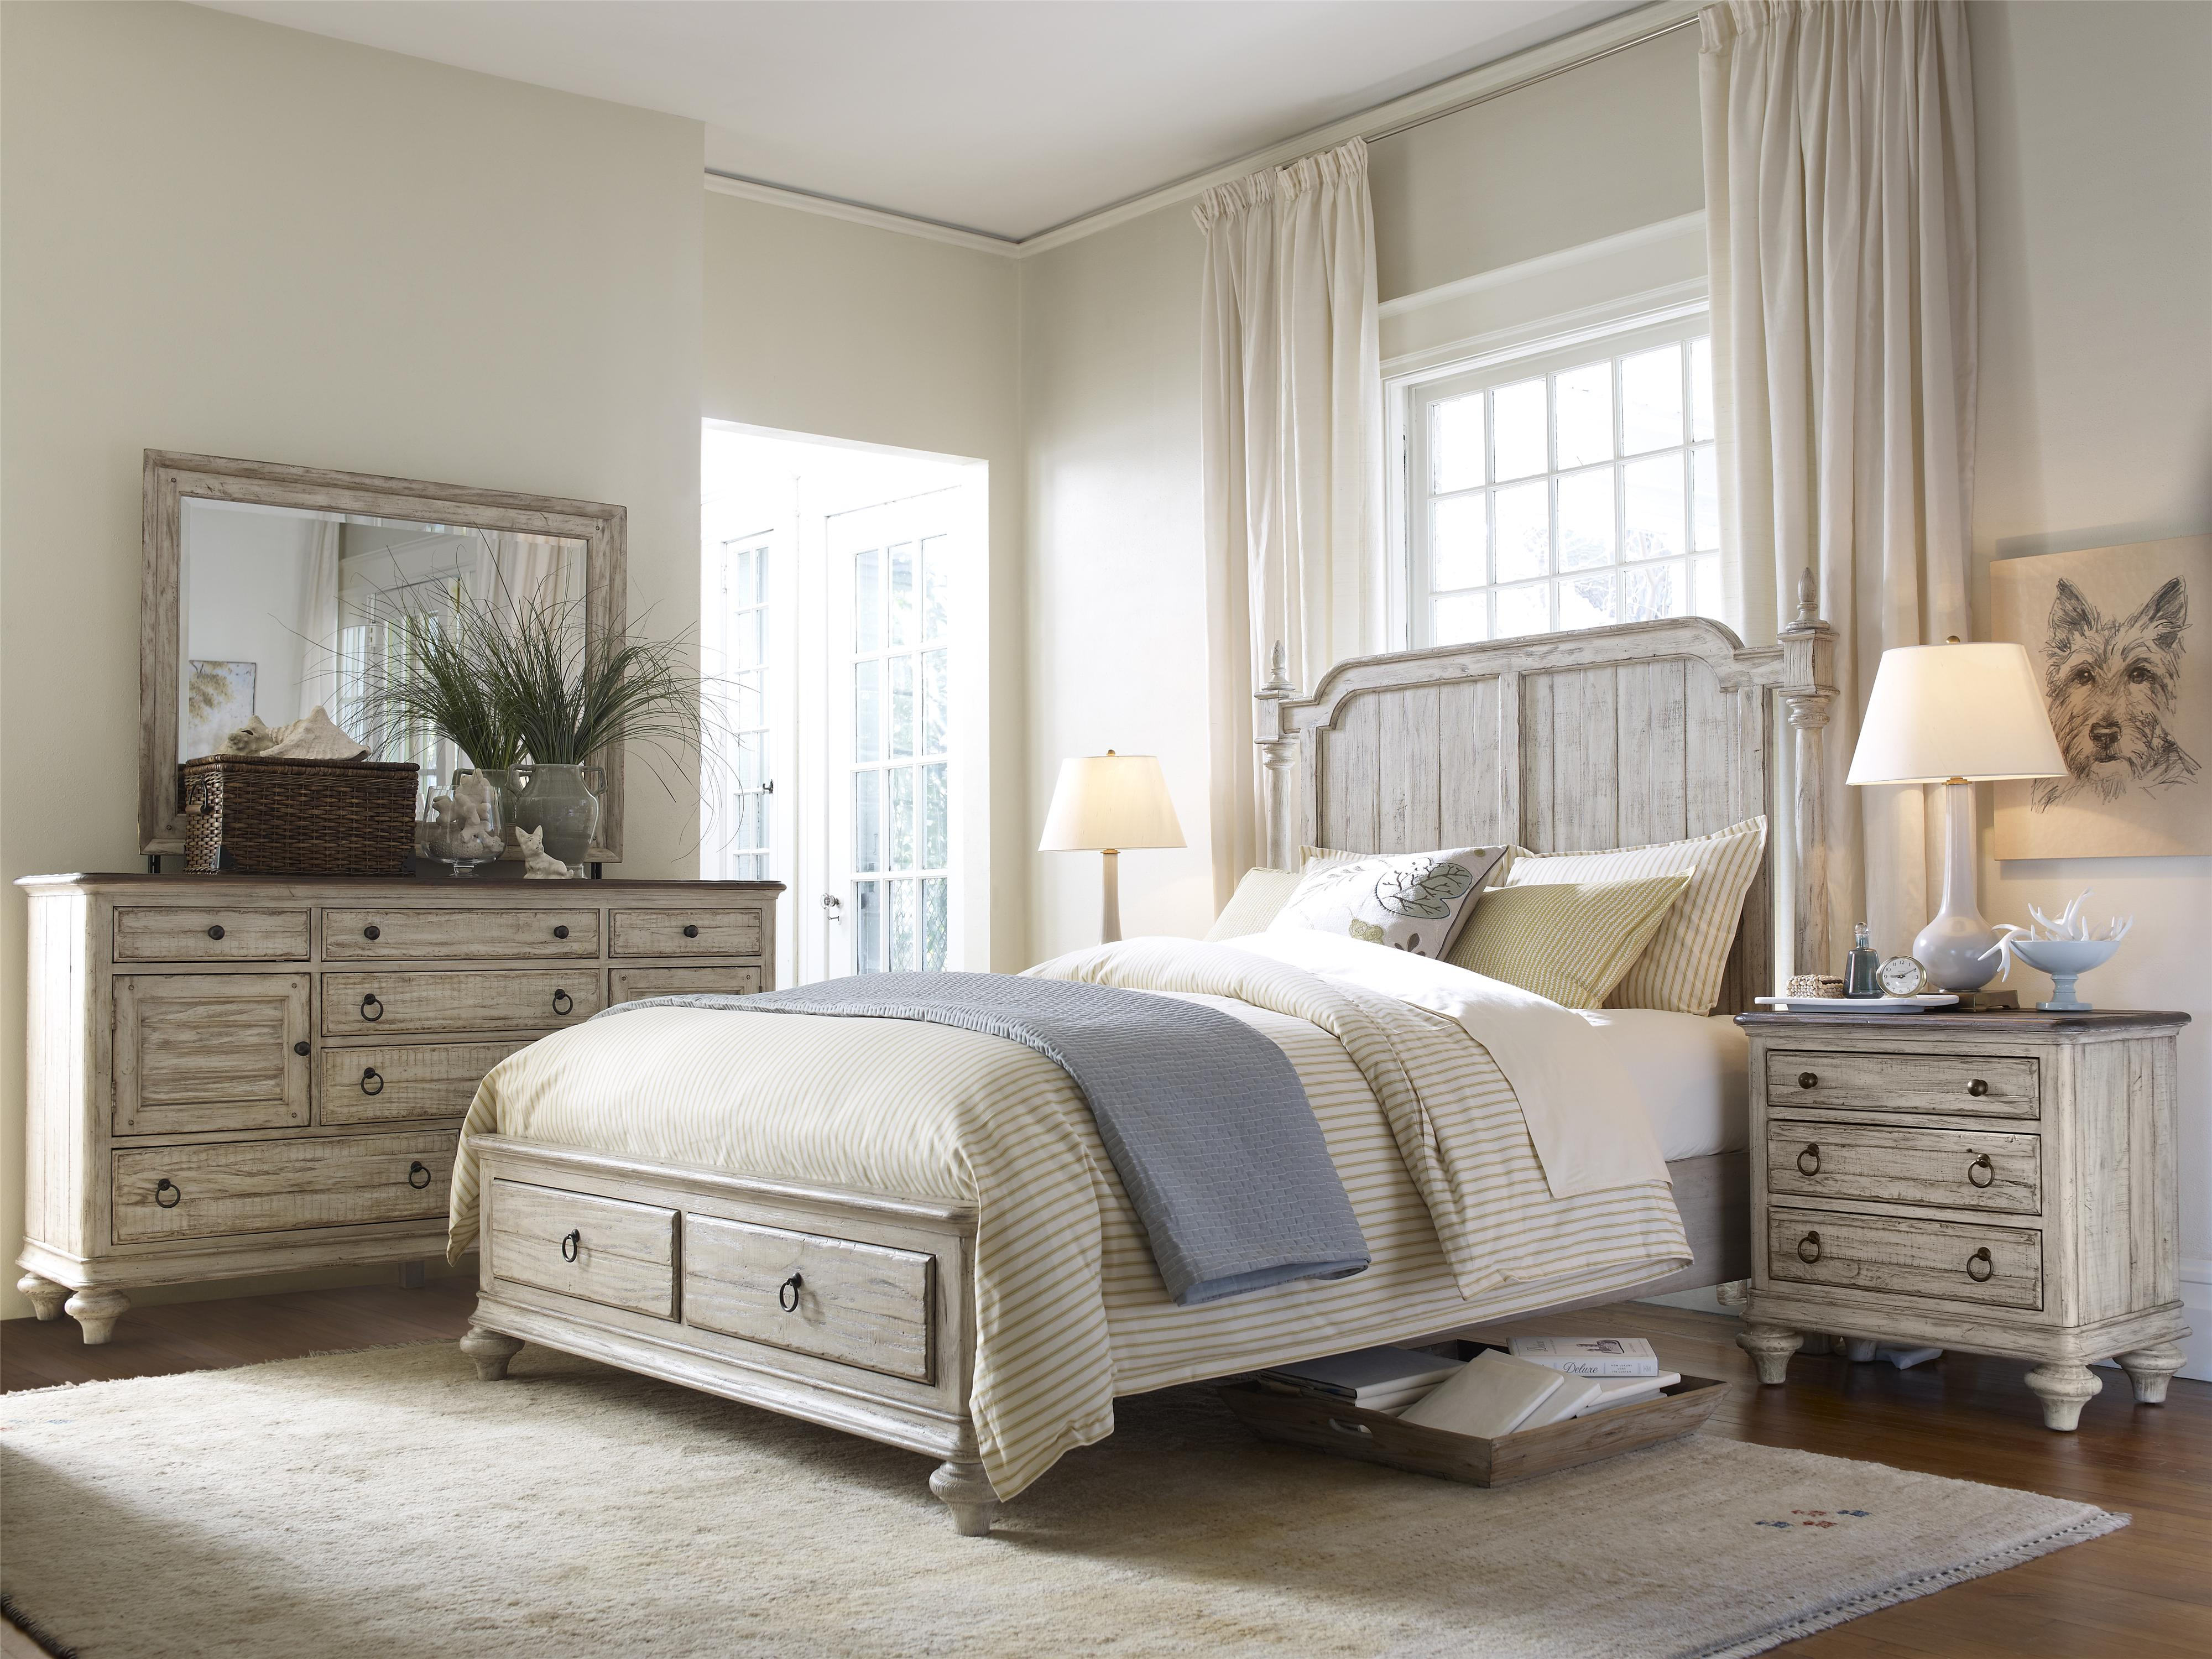 queen bedroom group 3 by kincaid furniture wolf furniture